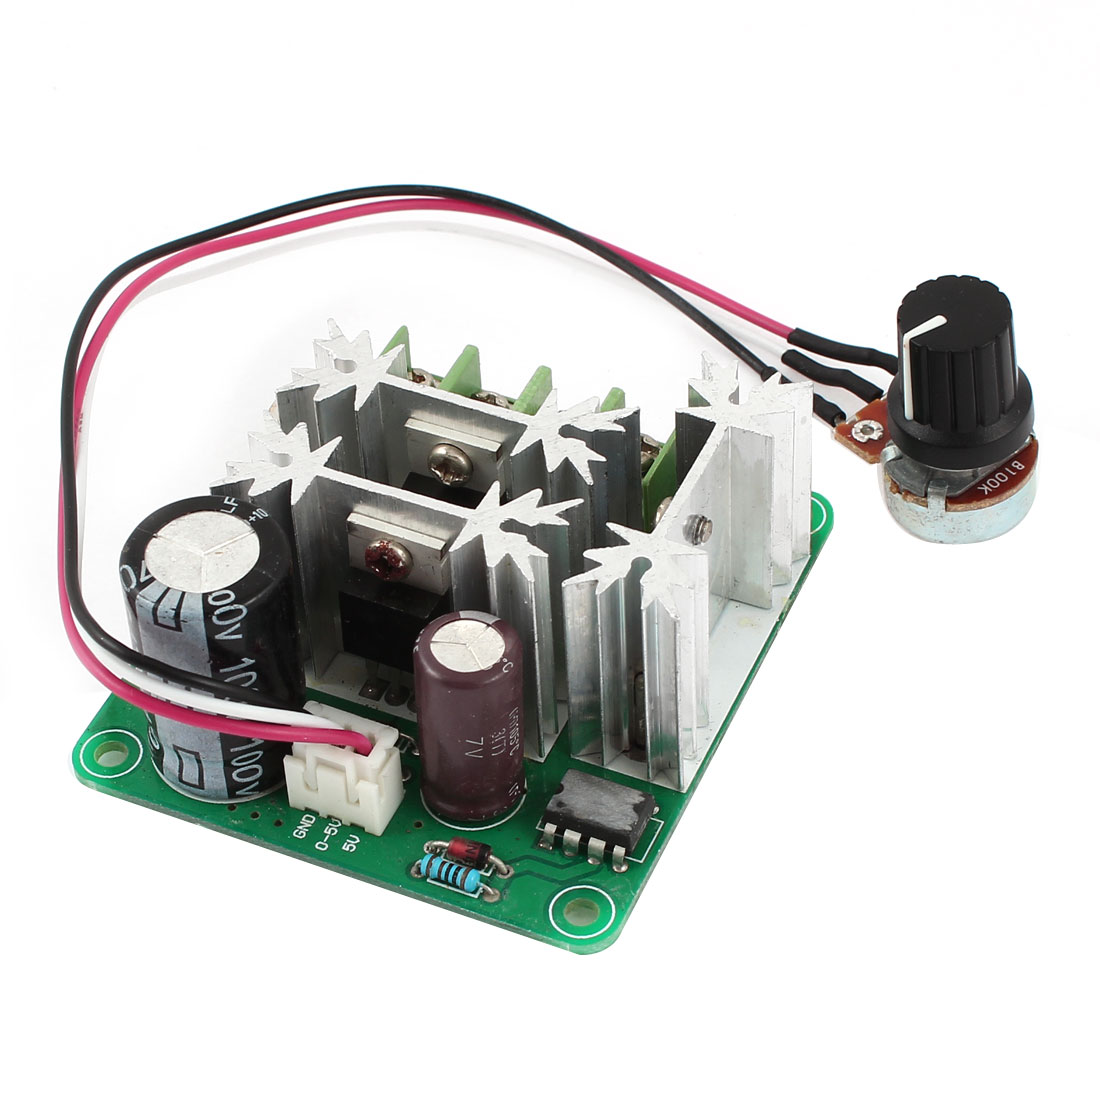 12V 24V 30V 10A 120W PWM High Torque DC Motor Speed Control Switch Controller CCM5